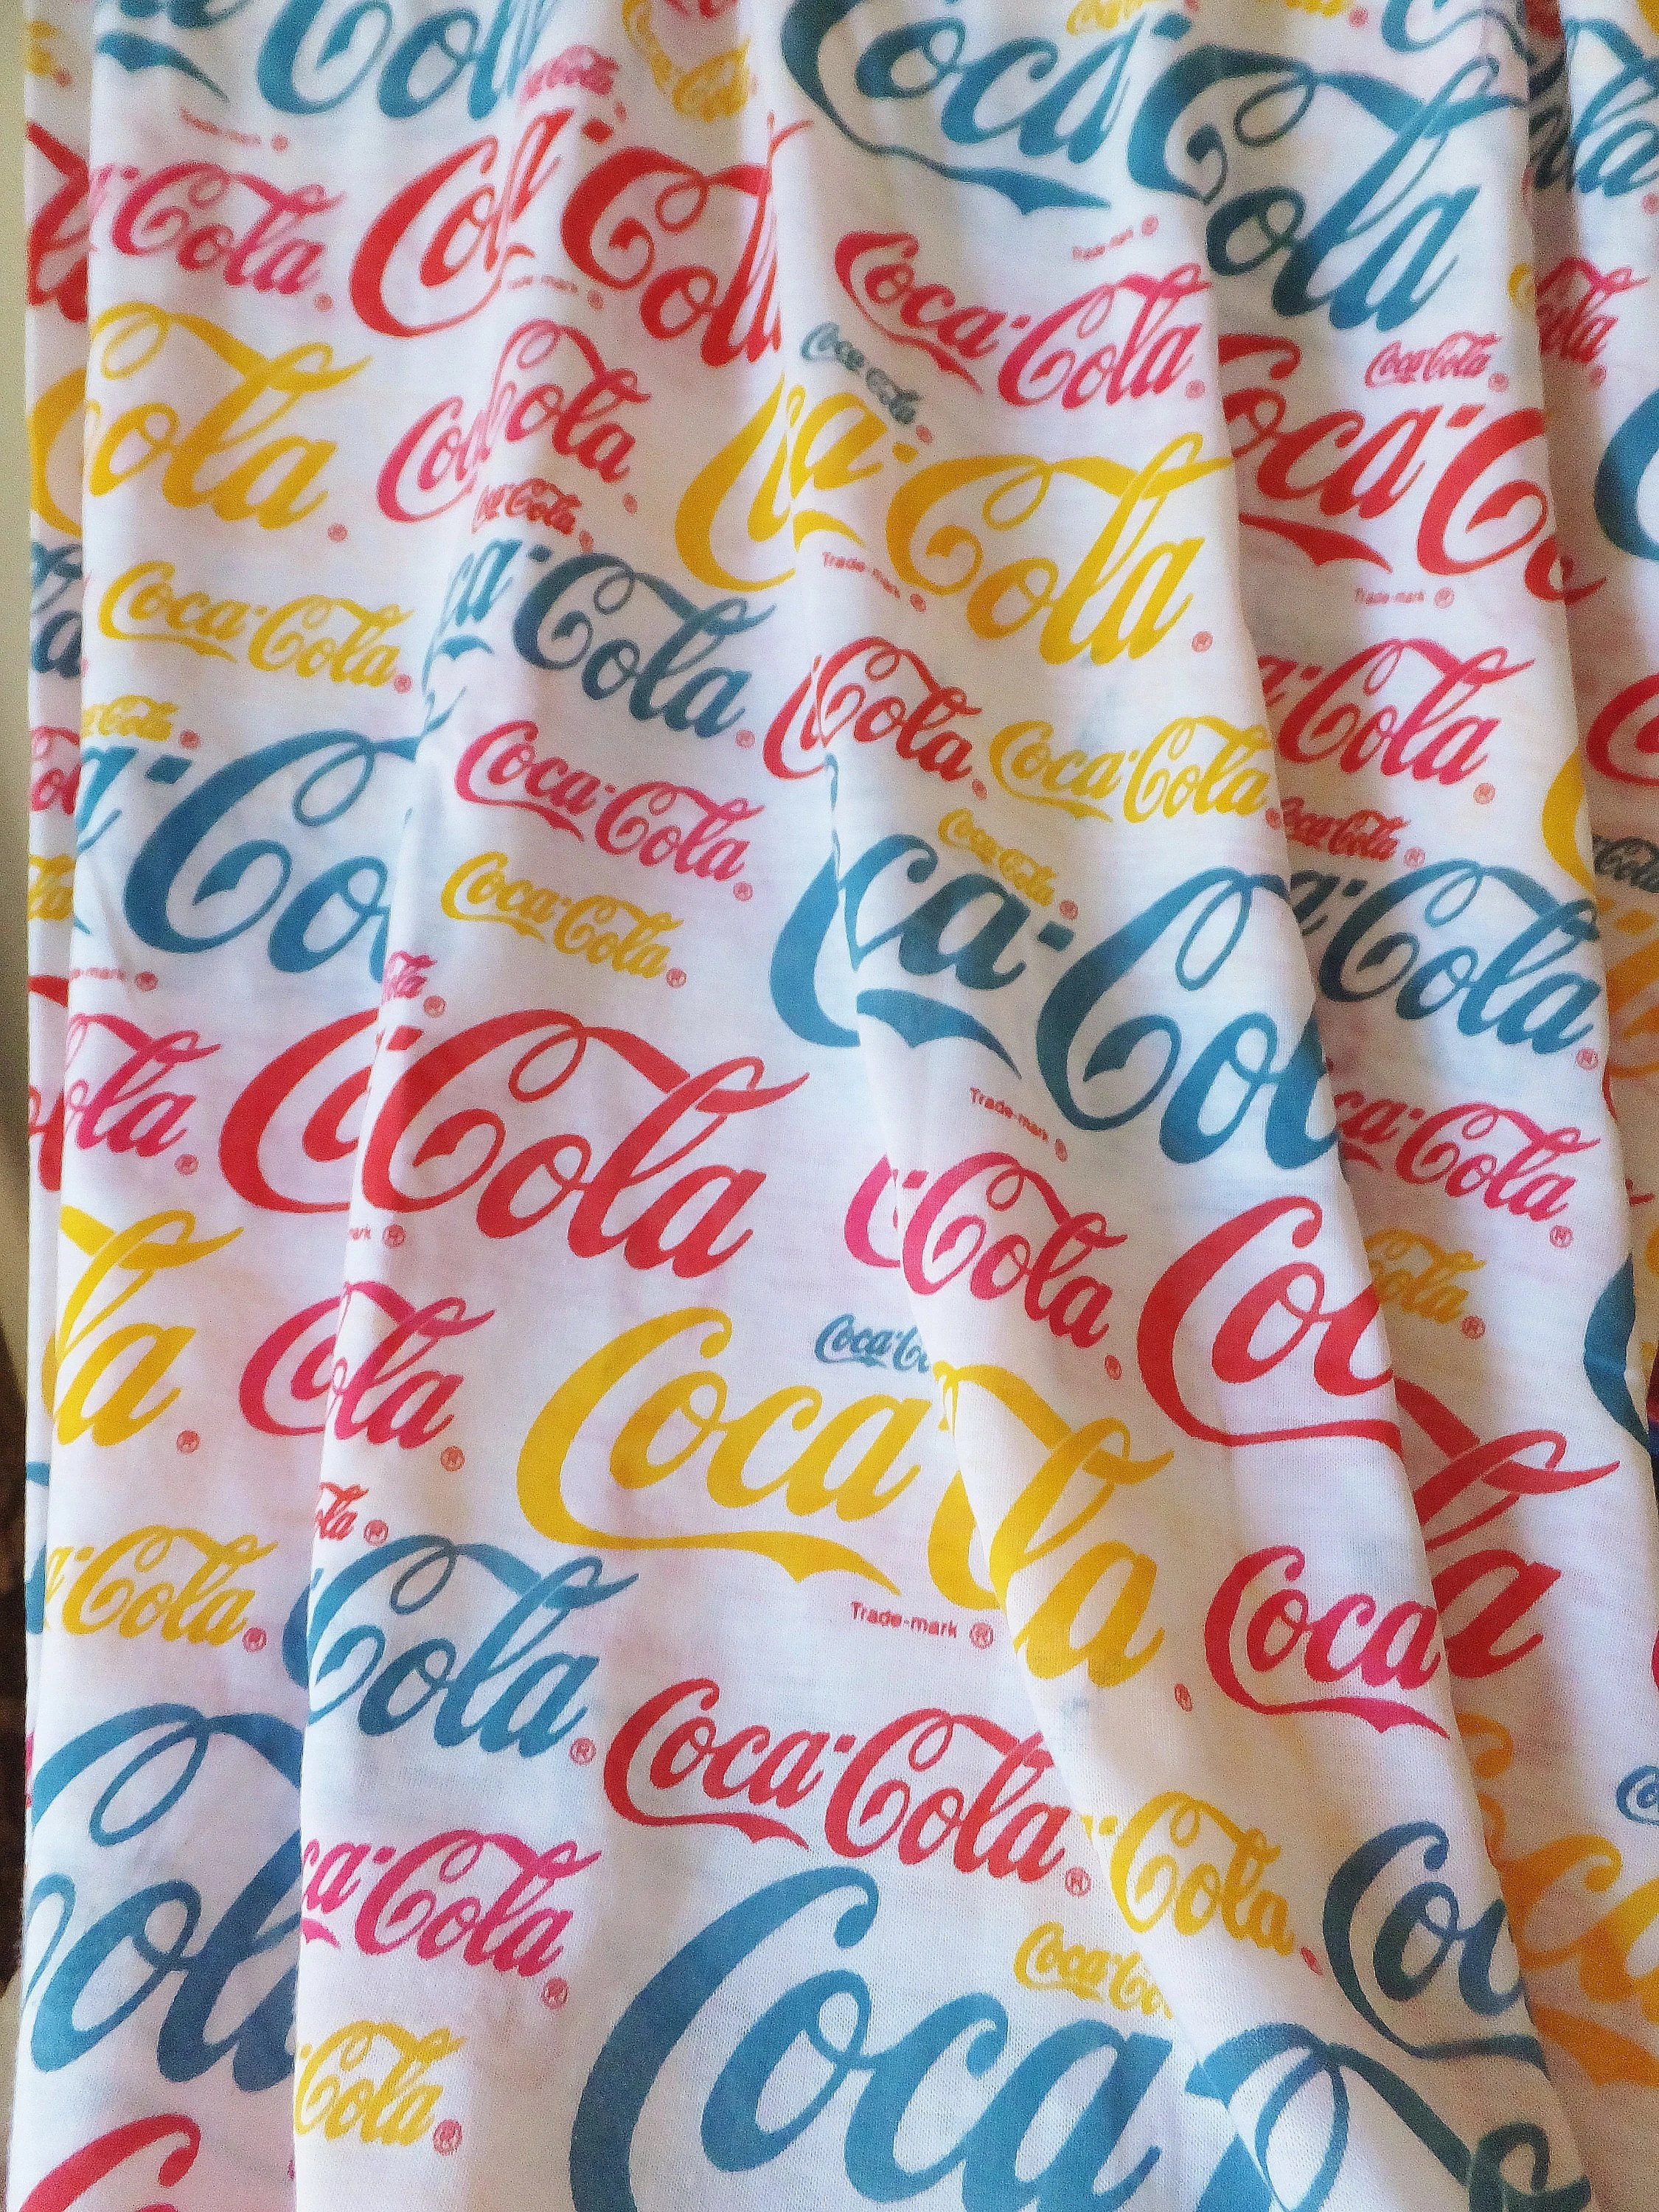 Coc Roter Teppich Coca Cola Stoff Jersey Stoff Coca Cola Marke Logo Stoff Rot Blau Gelb Stoff T Shirt Stoff Stretch Jersey Nähen Stoff